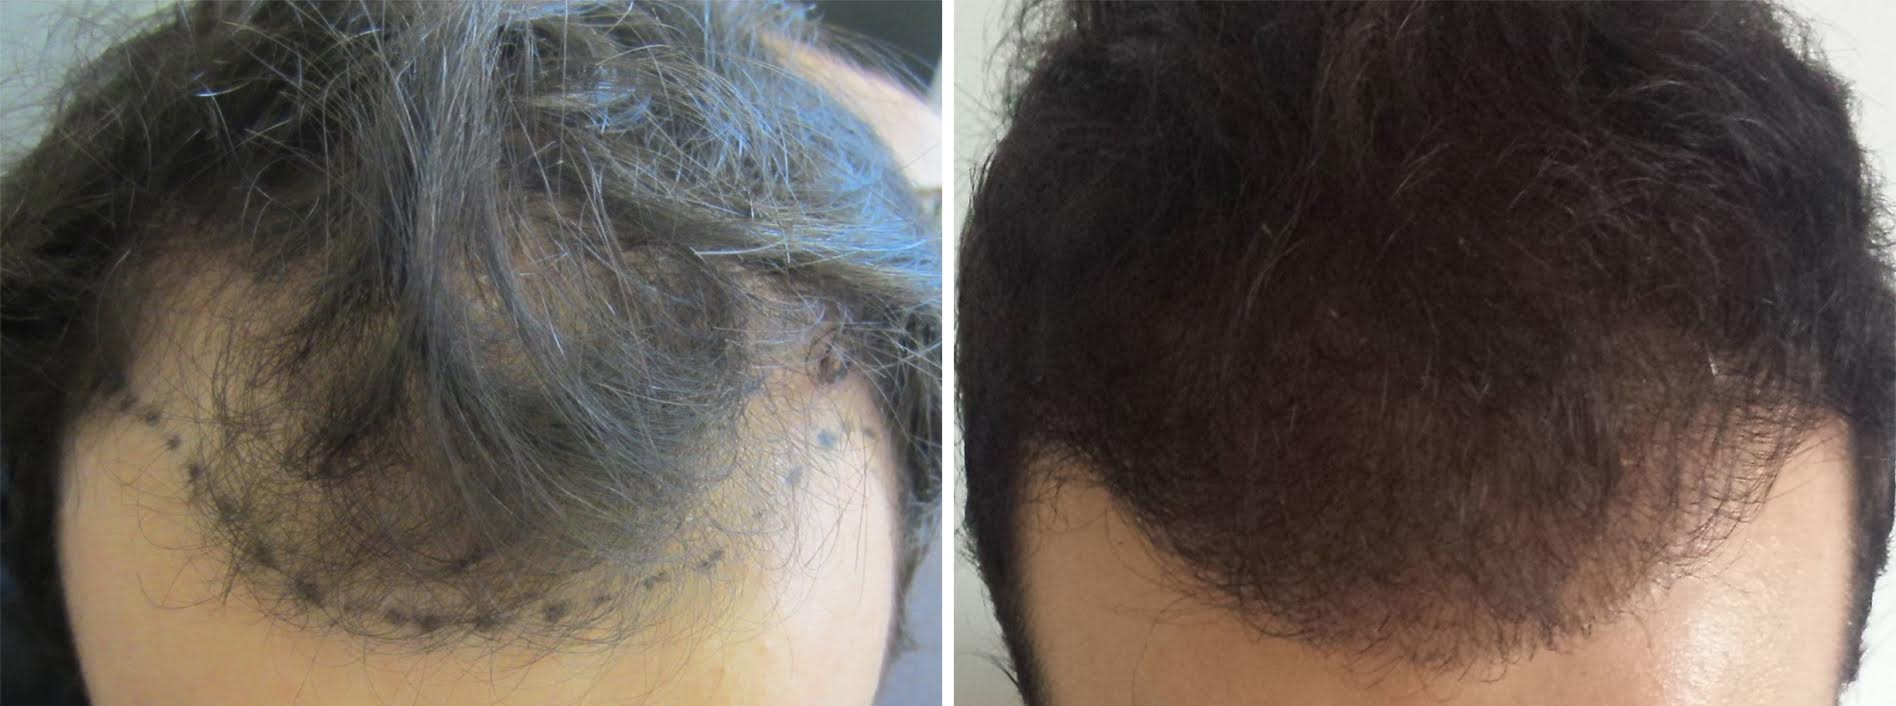 before after hair transplant2